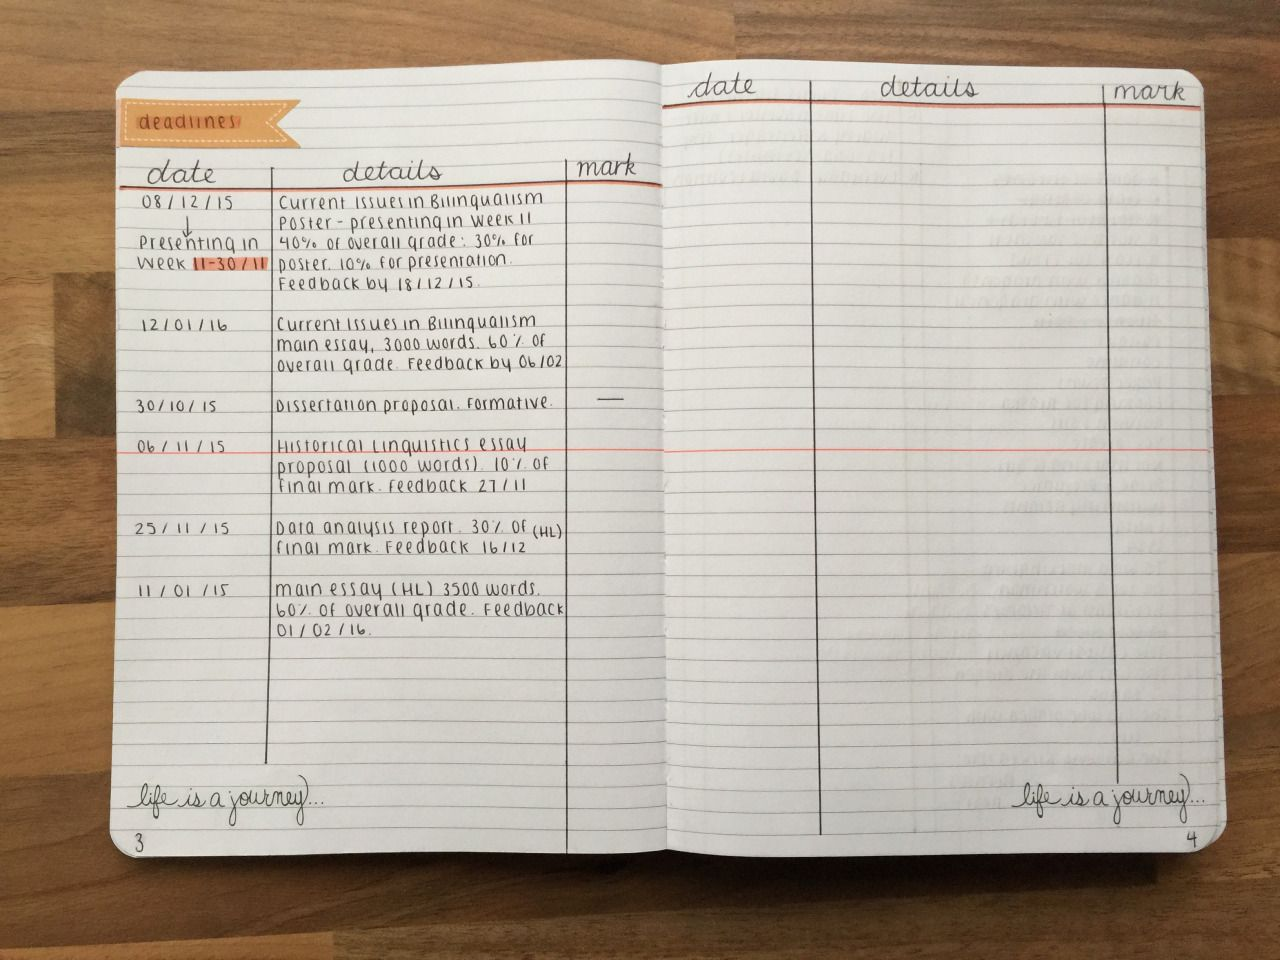 31-10-2015 / So I've been asked by a few people to post my bullet journal setup so here it is! I still have some work to do with regards to my timetable pages so I haven't included those here.      1 / Contents page     2 / Deadlines page     3 / To be read page     4 / Calendar spread (unfinished)     5 / October '15 monthly view     6 / Typical example of a ~¾ day spread